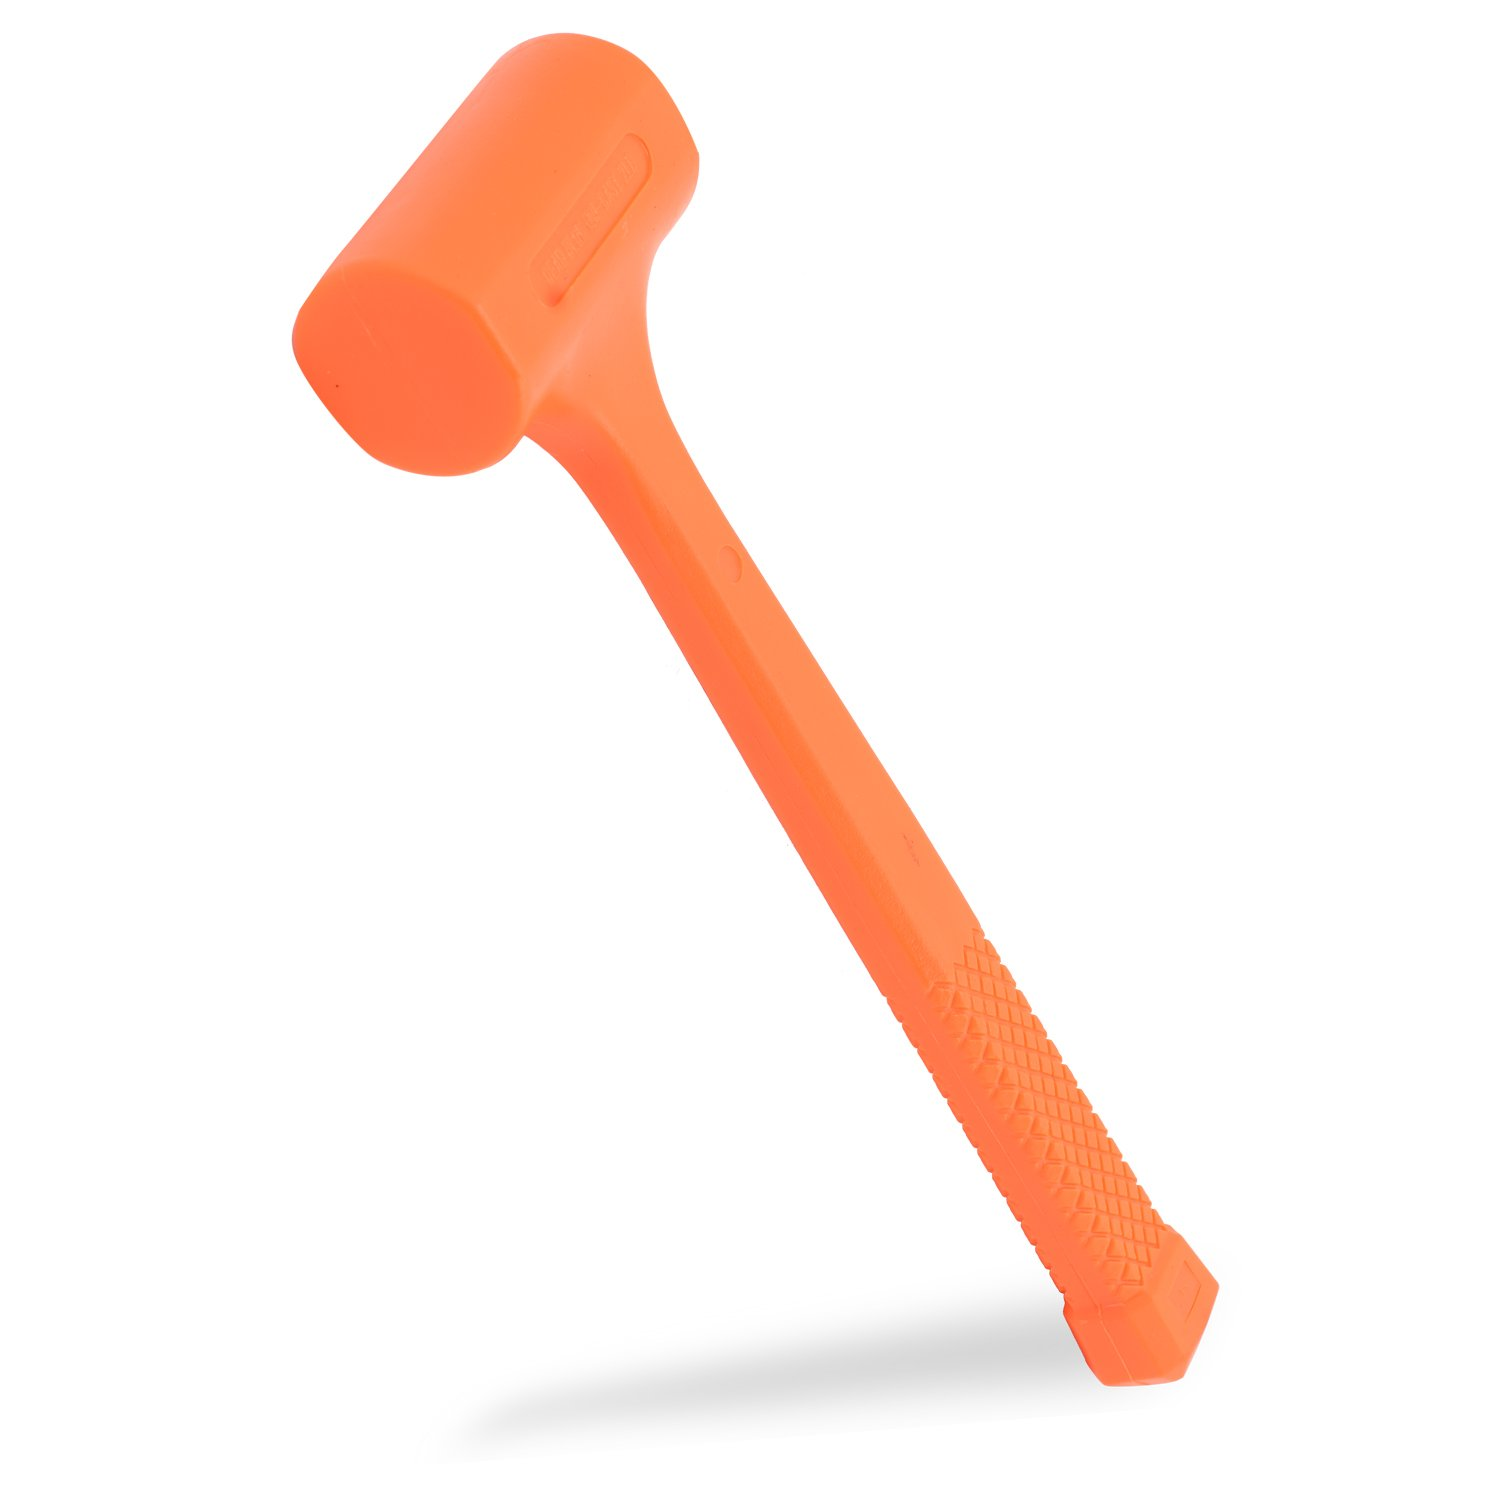 Neiko 02847A 2 LB Dead Blow Hammer, Neon Orange I Unibody Molded | Checkered Grip | Spark and Rebound Resistant